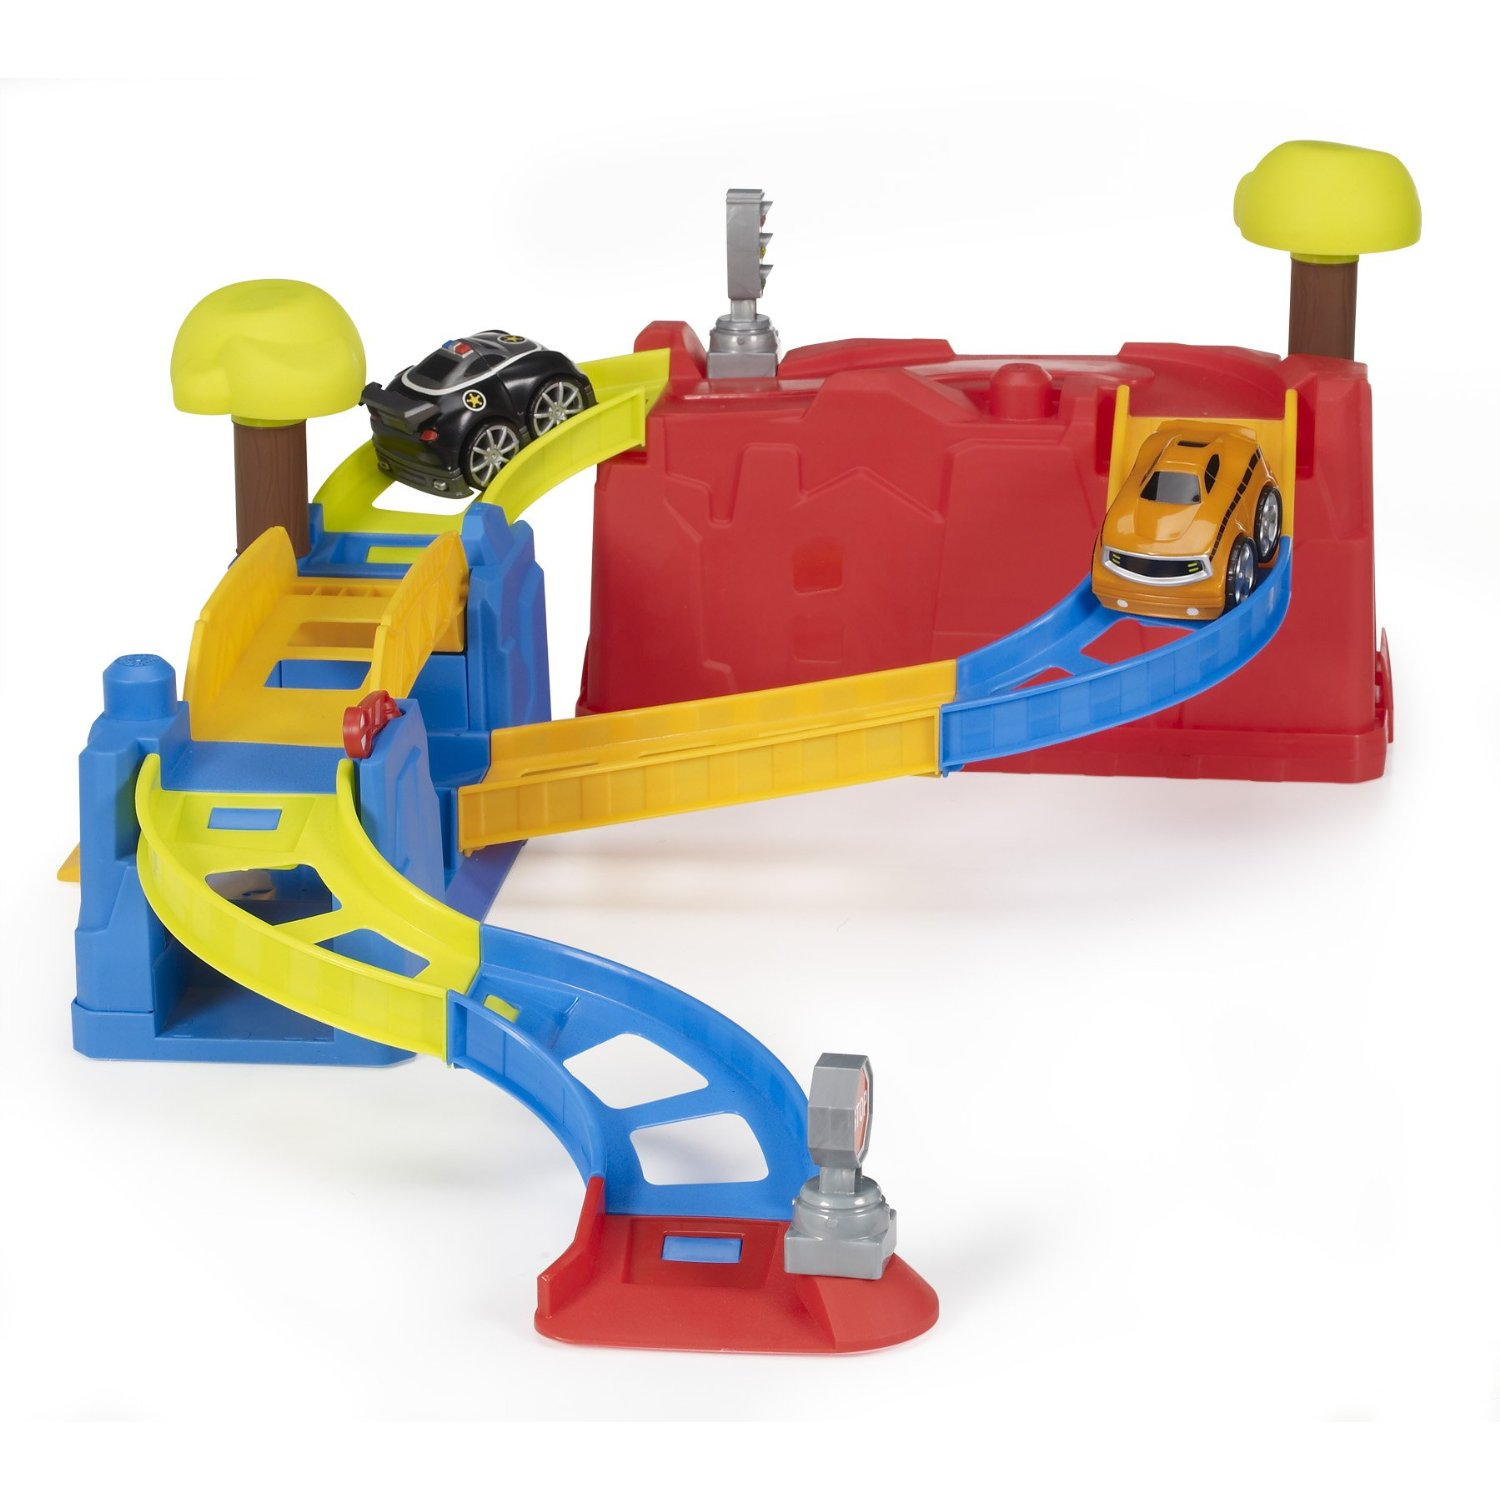 Great Playset for Kids Ages 1 3